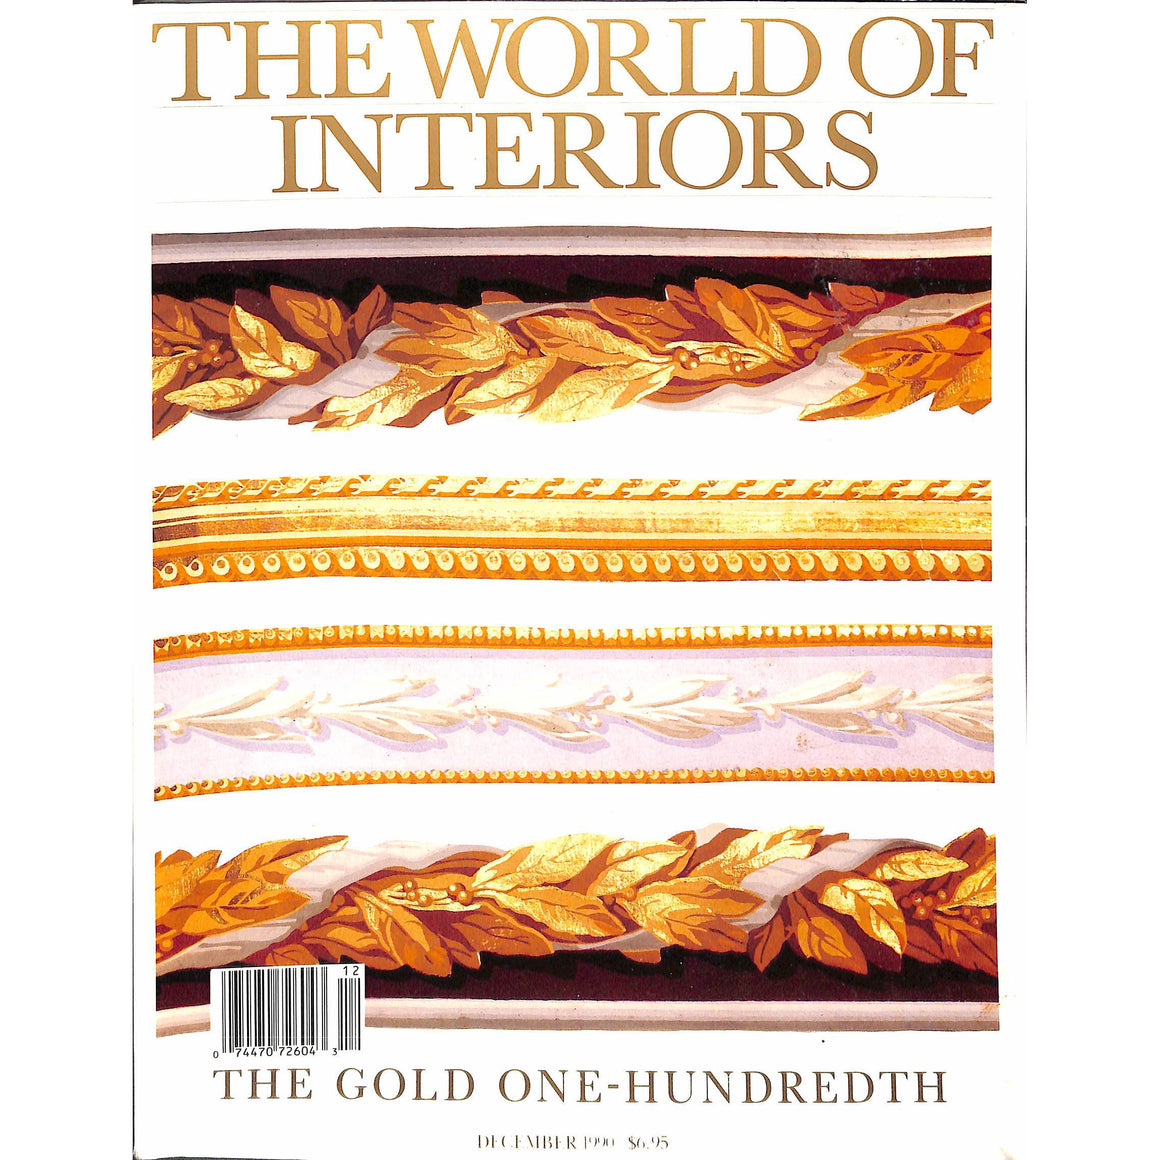 The World of Interiors December 1990